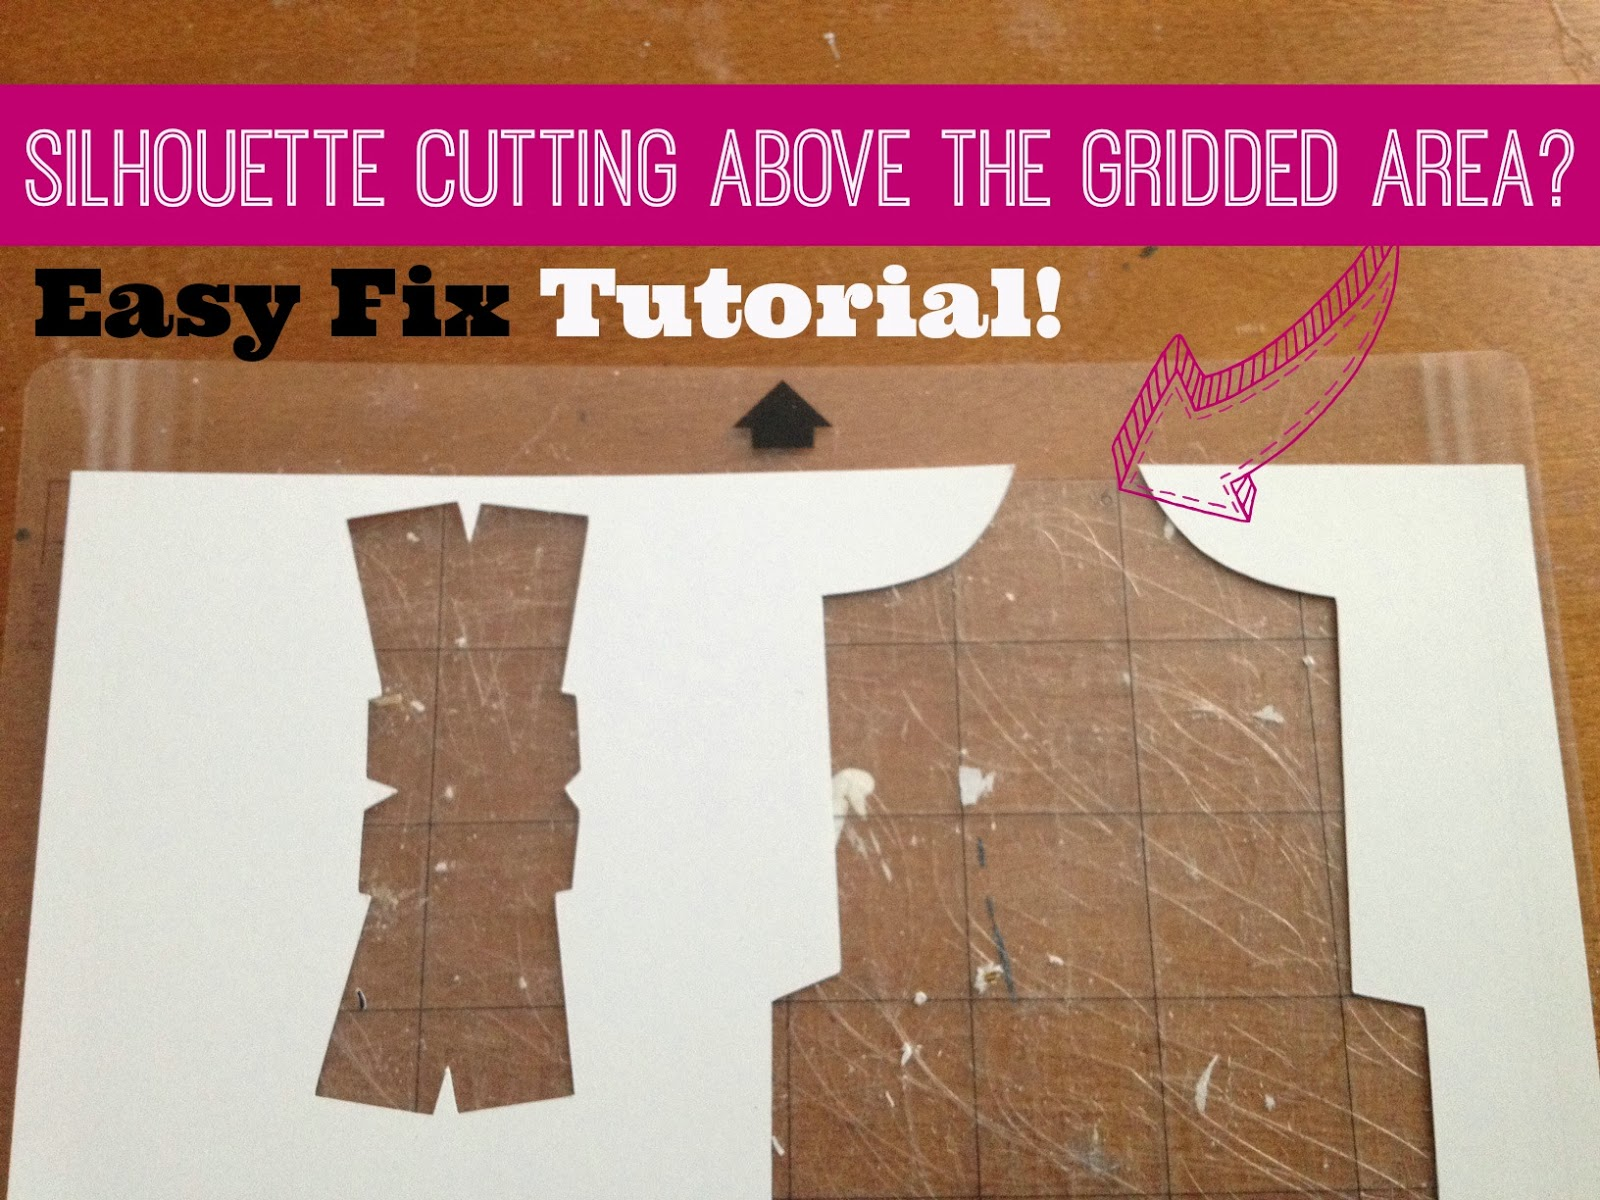 Silhouette tutorial, beginners, cutting above grid